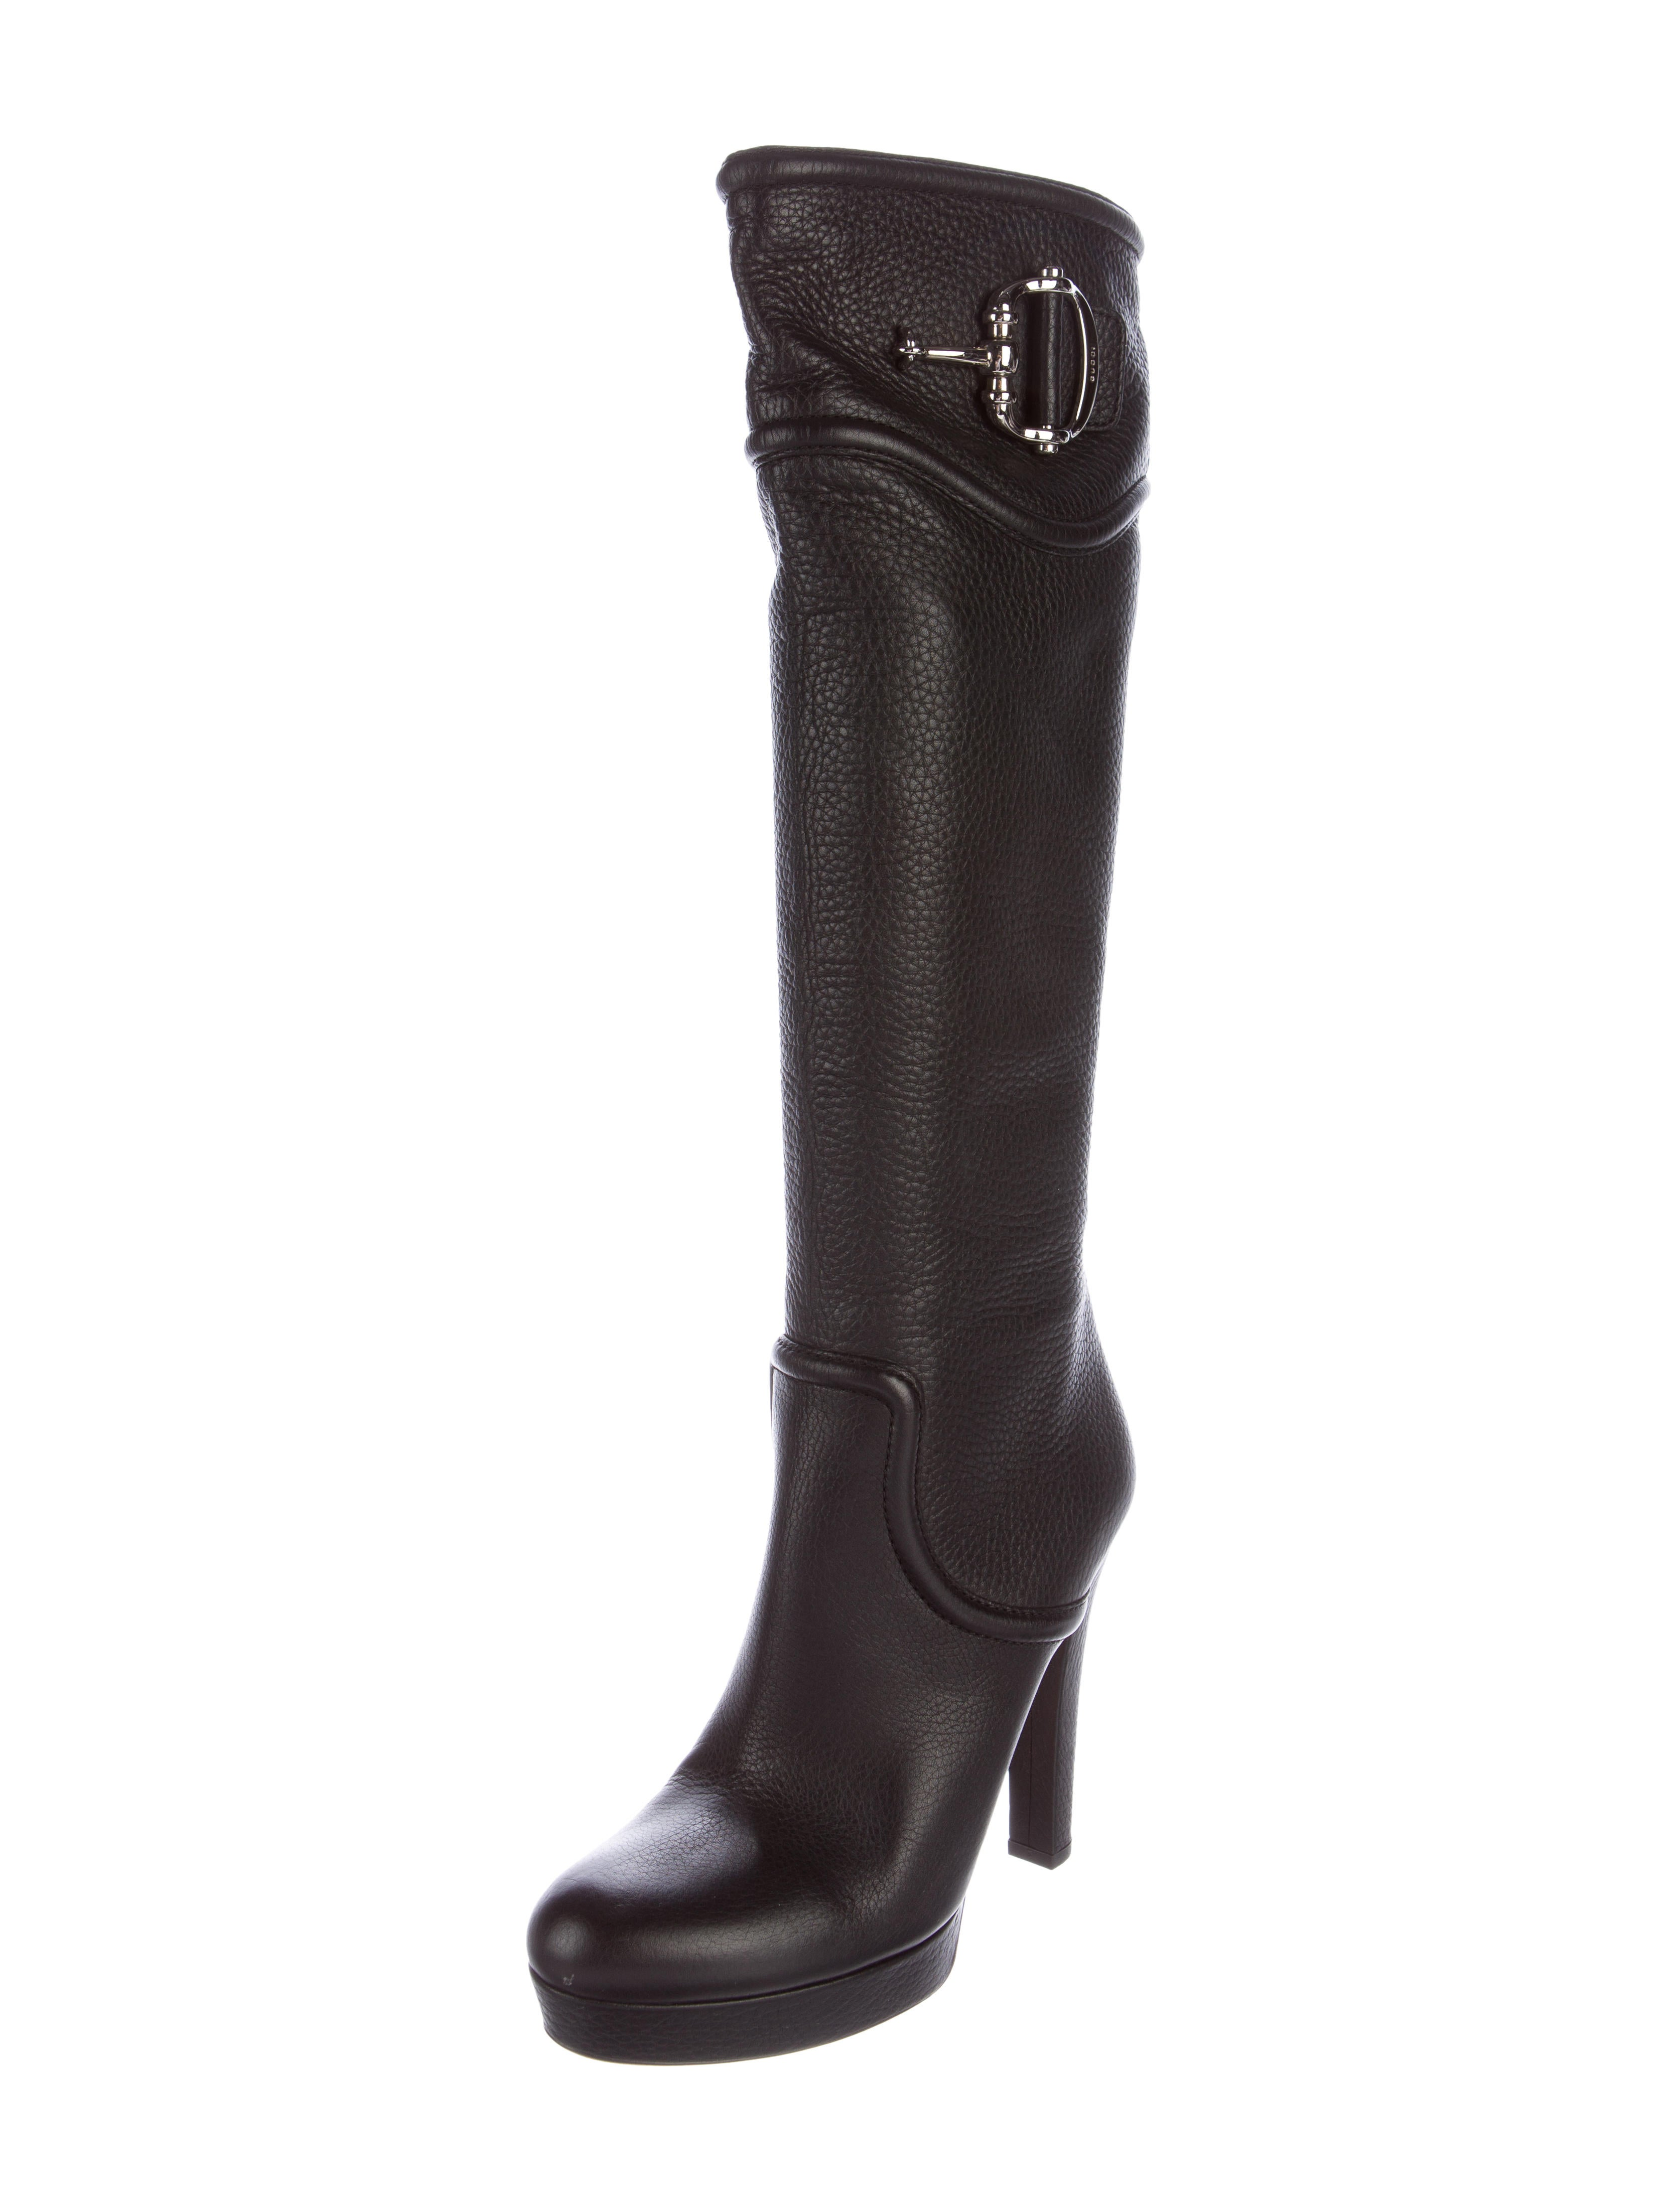 Knee High Boots Creating a splash with your shoes is easy when you wear a pair of knee high boots from Sinful Shoes. Our selection of stylish designs will have others doing a double take when you walk by.